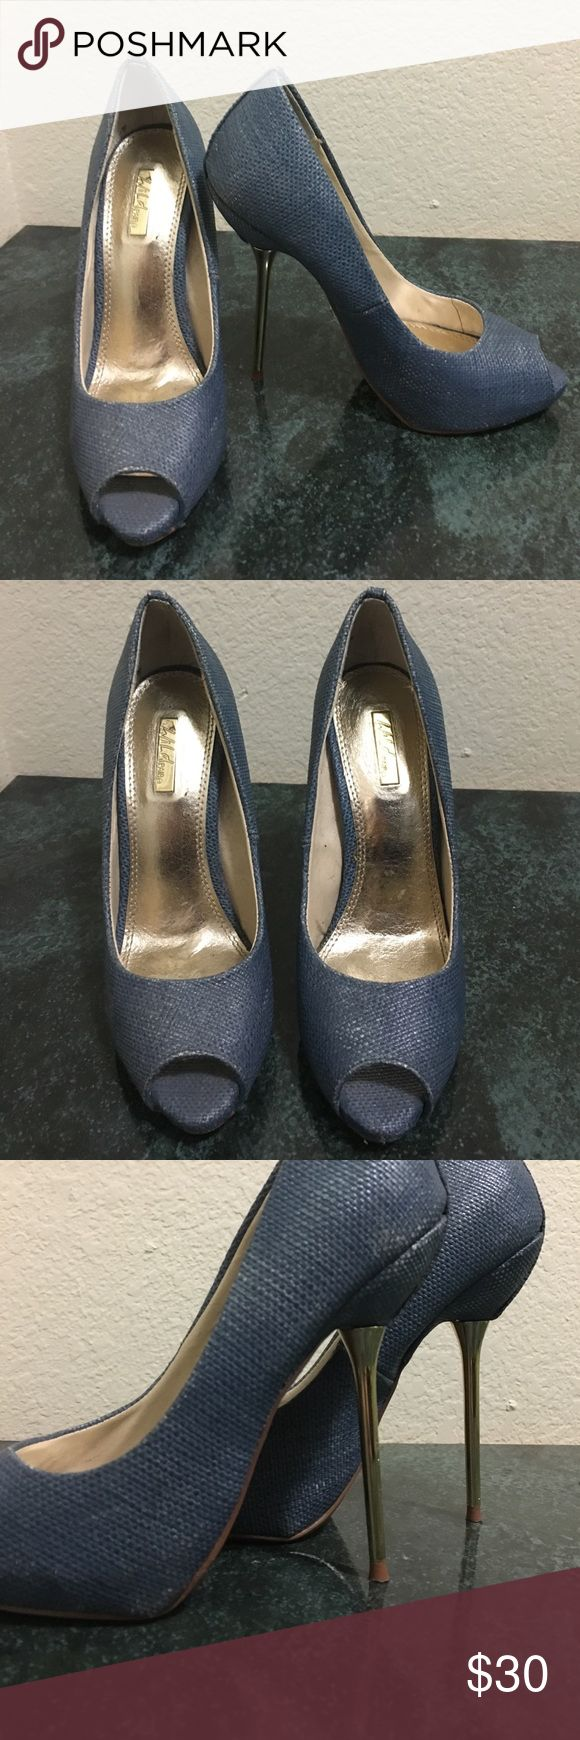 Gorgeous blue peep toe pumps with gold stiletto! These are one of my favorites ! So effortlessly sexy . Get so many compliments on these . Gorgeous dusty blue with wicker detailing . Gold stiletto heels add that gorgeous flair . Hate to let these go but really have no occasion to wear anymore . Please give them a good home ! Pre loved condition , purchased at bakers ! Wild Pair Shoes Heels